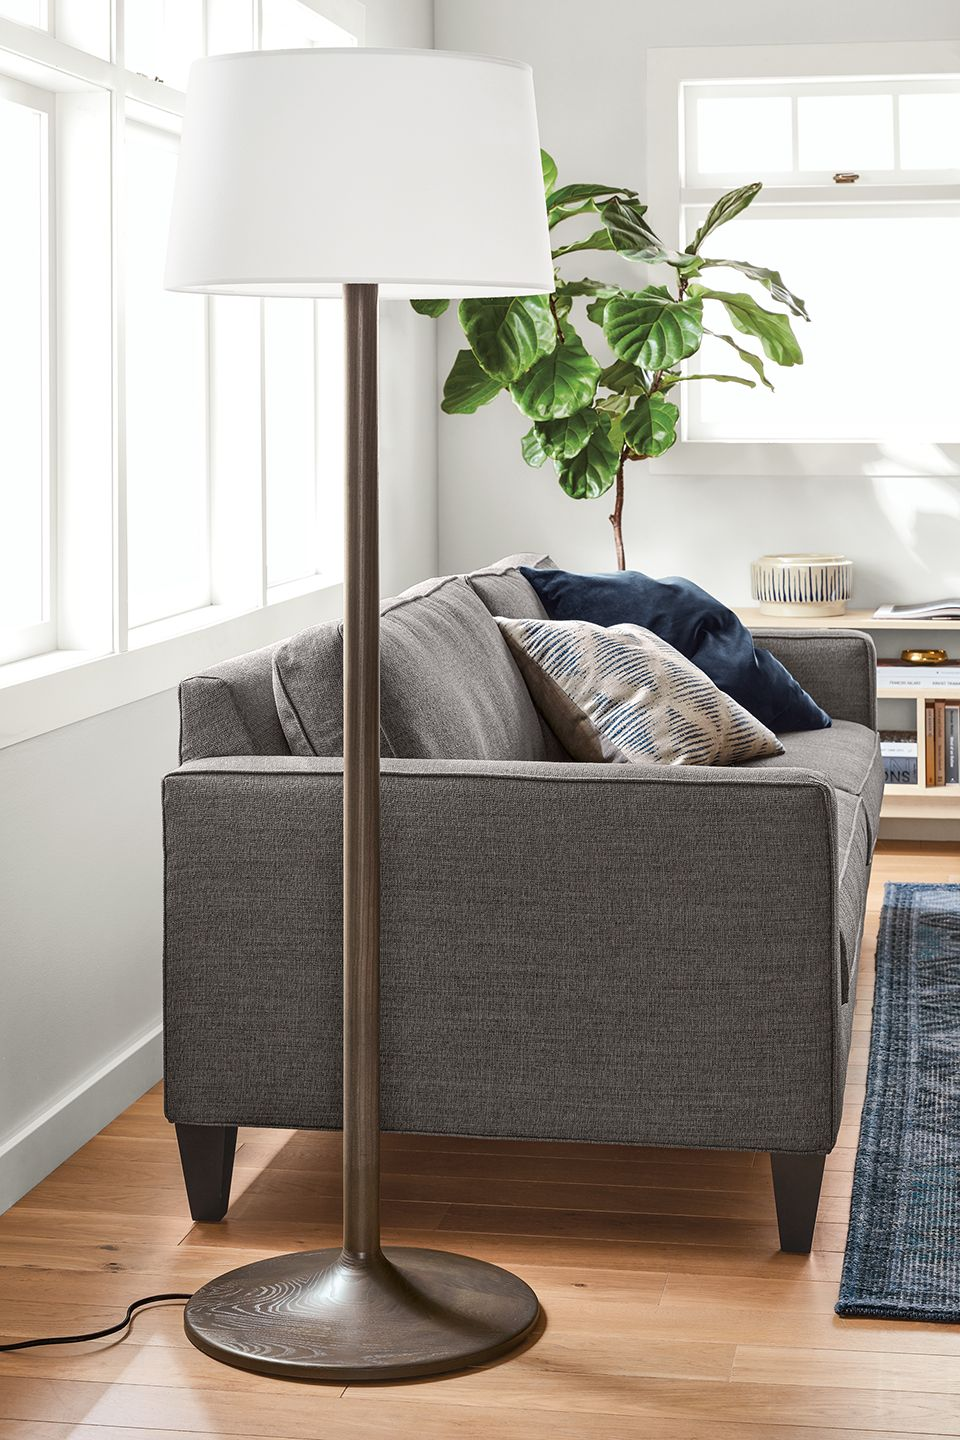 Detail of Connelly floor lamp near sofa